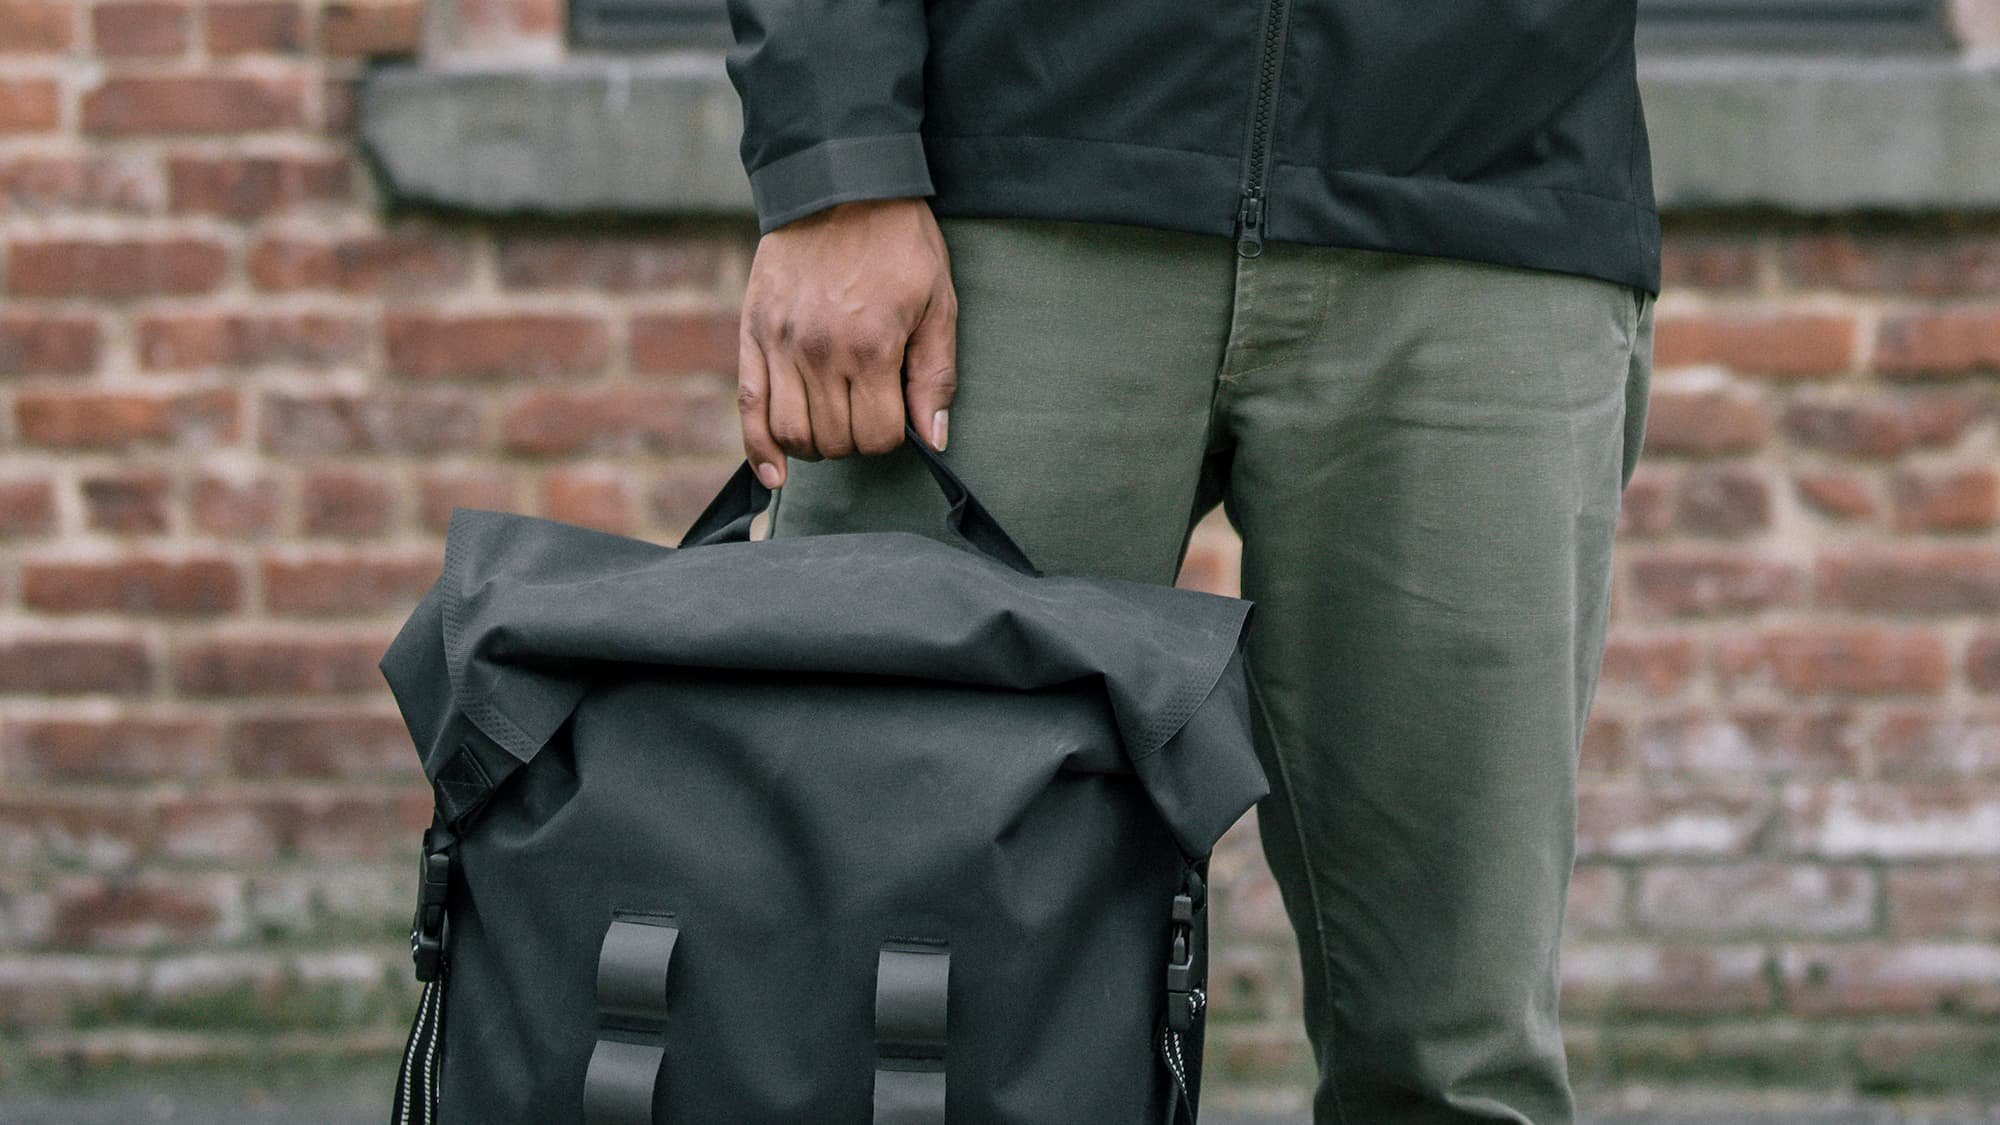 urban ex 30L goes everywhere